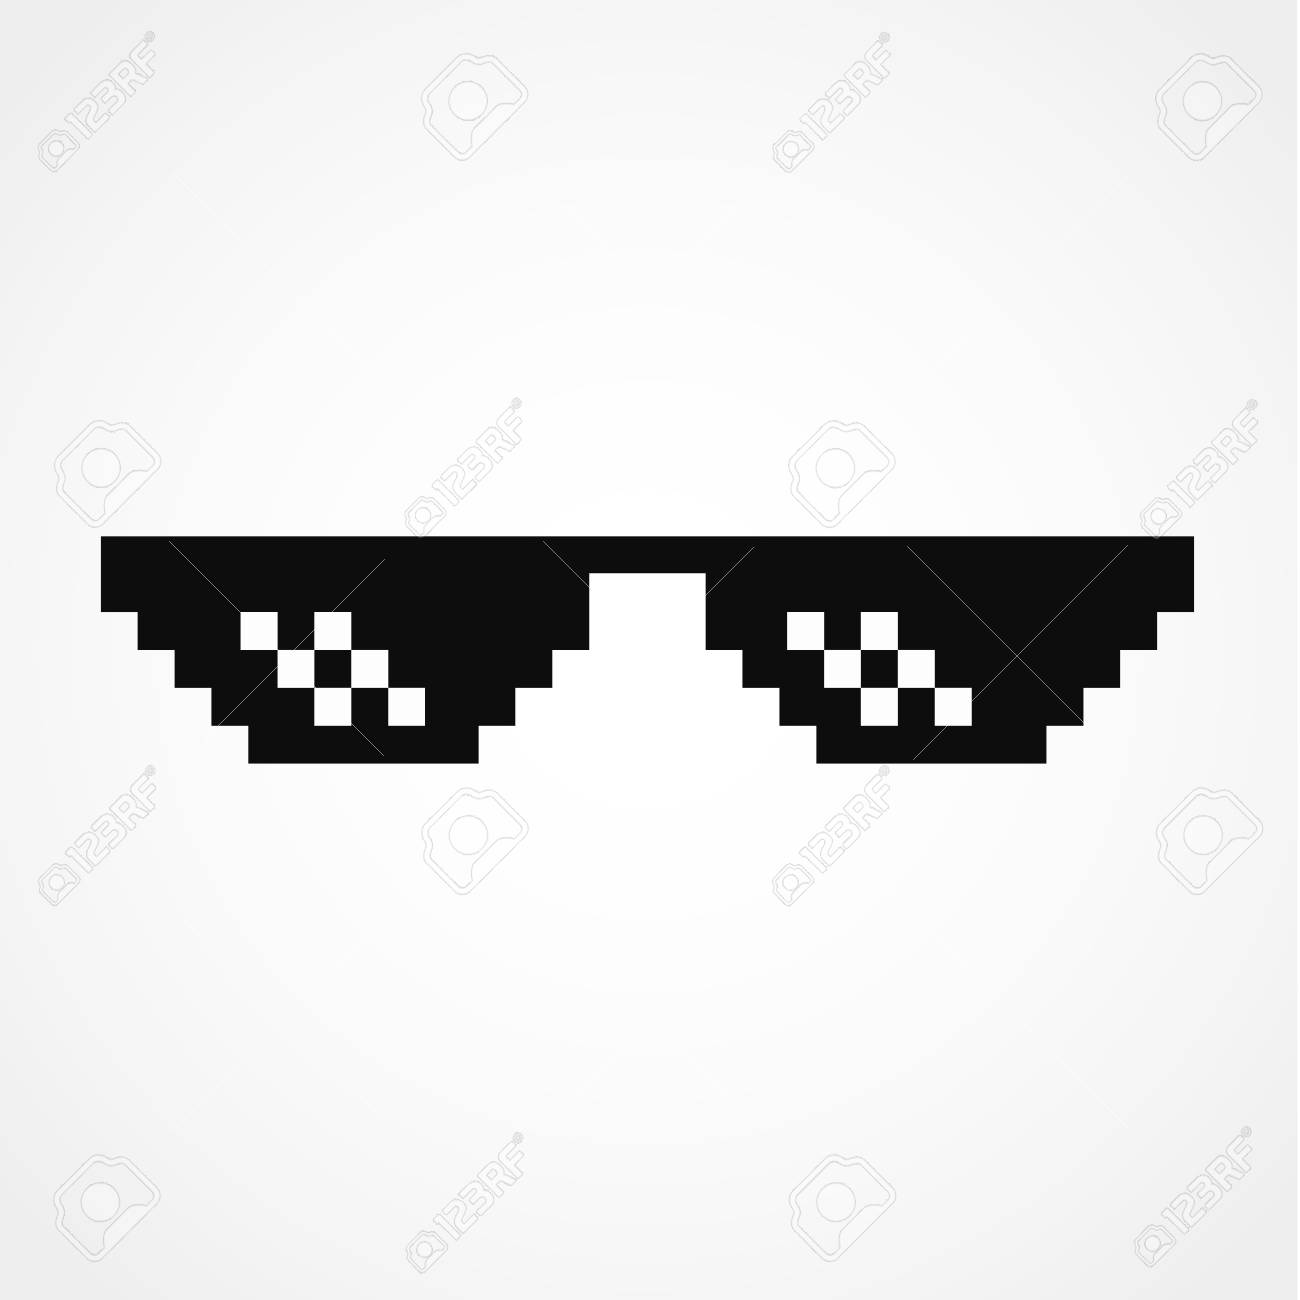 Pixel Art Glasses Of Thug Life Meme Royalty Free Cliparts Vectors And Stock Illustration Image 96725706